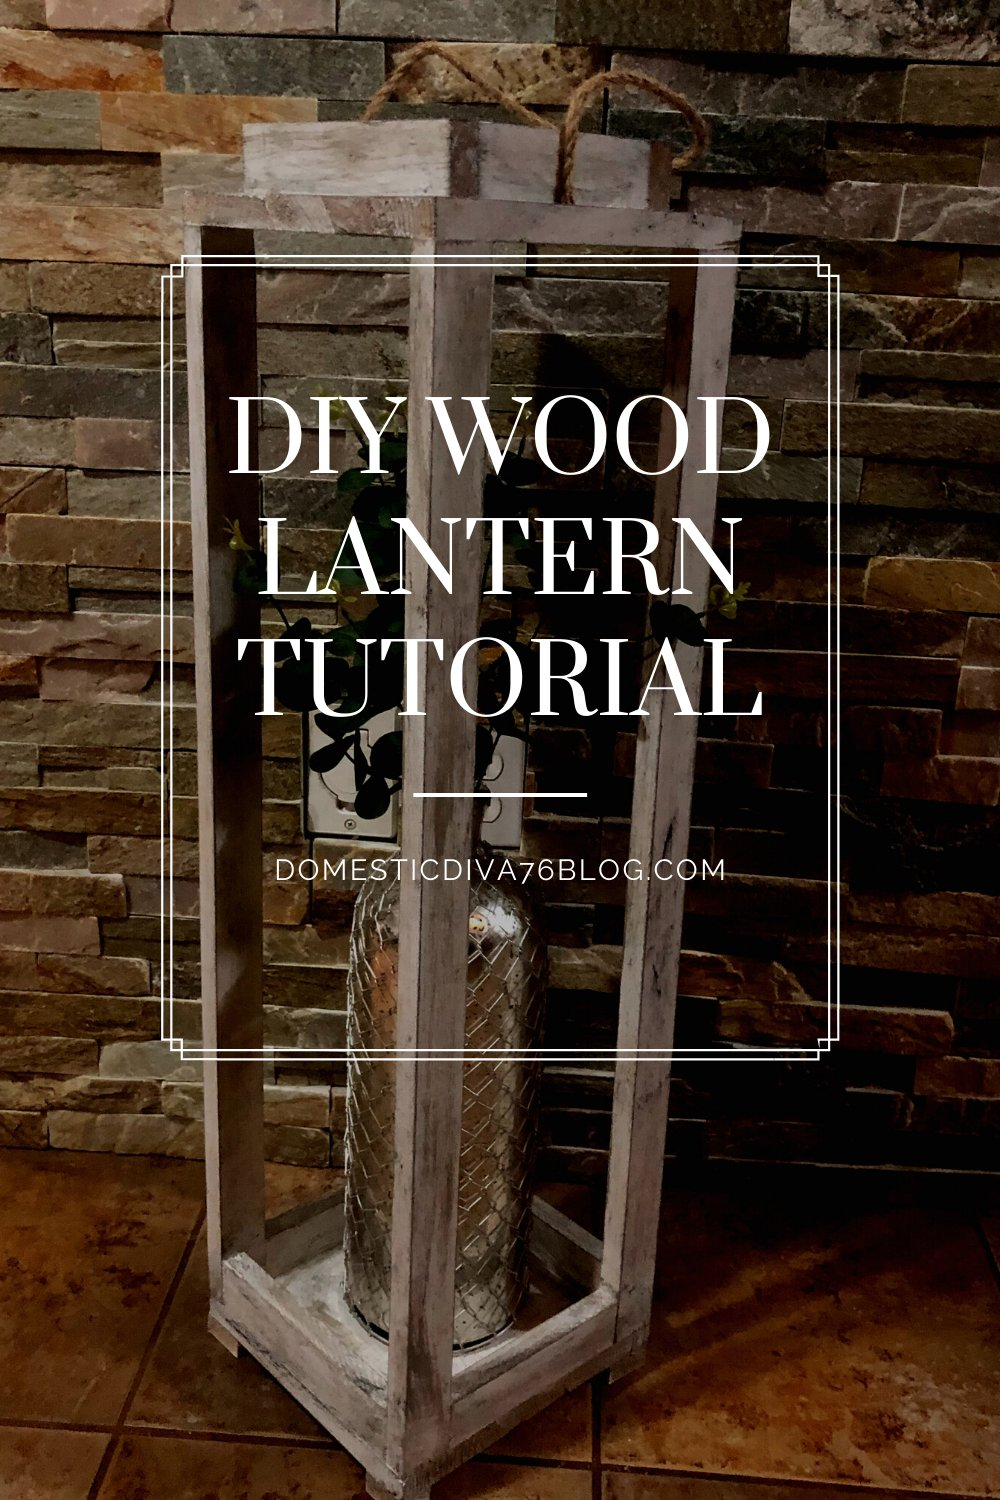 Domestic Diva 76 On Twitter Rustic Wood Lantern Diy In This Blog Post I Give You A Step By Step Tutorial On How To Build This Beautiful Large Lantern Https T Co Ayzqq9at0u Https T Co Sqlbv71ymg